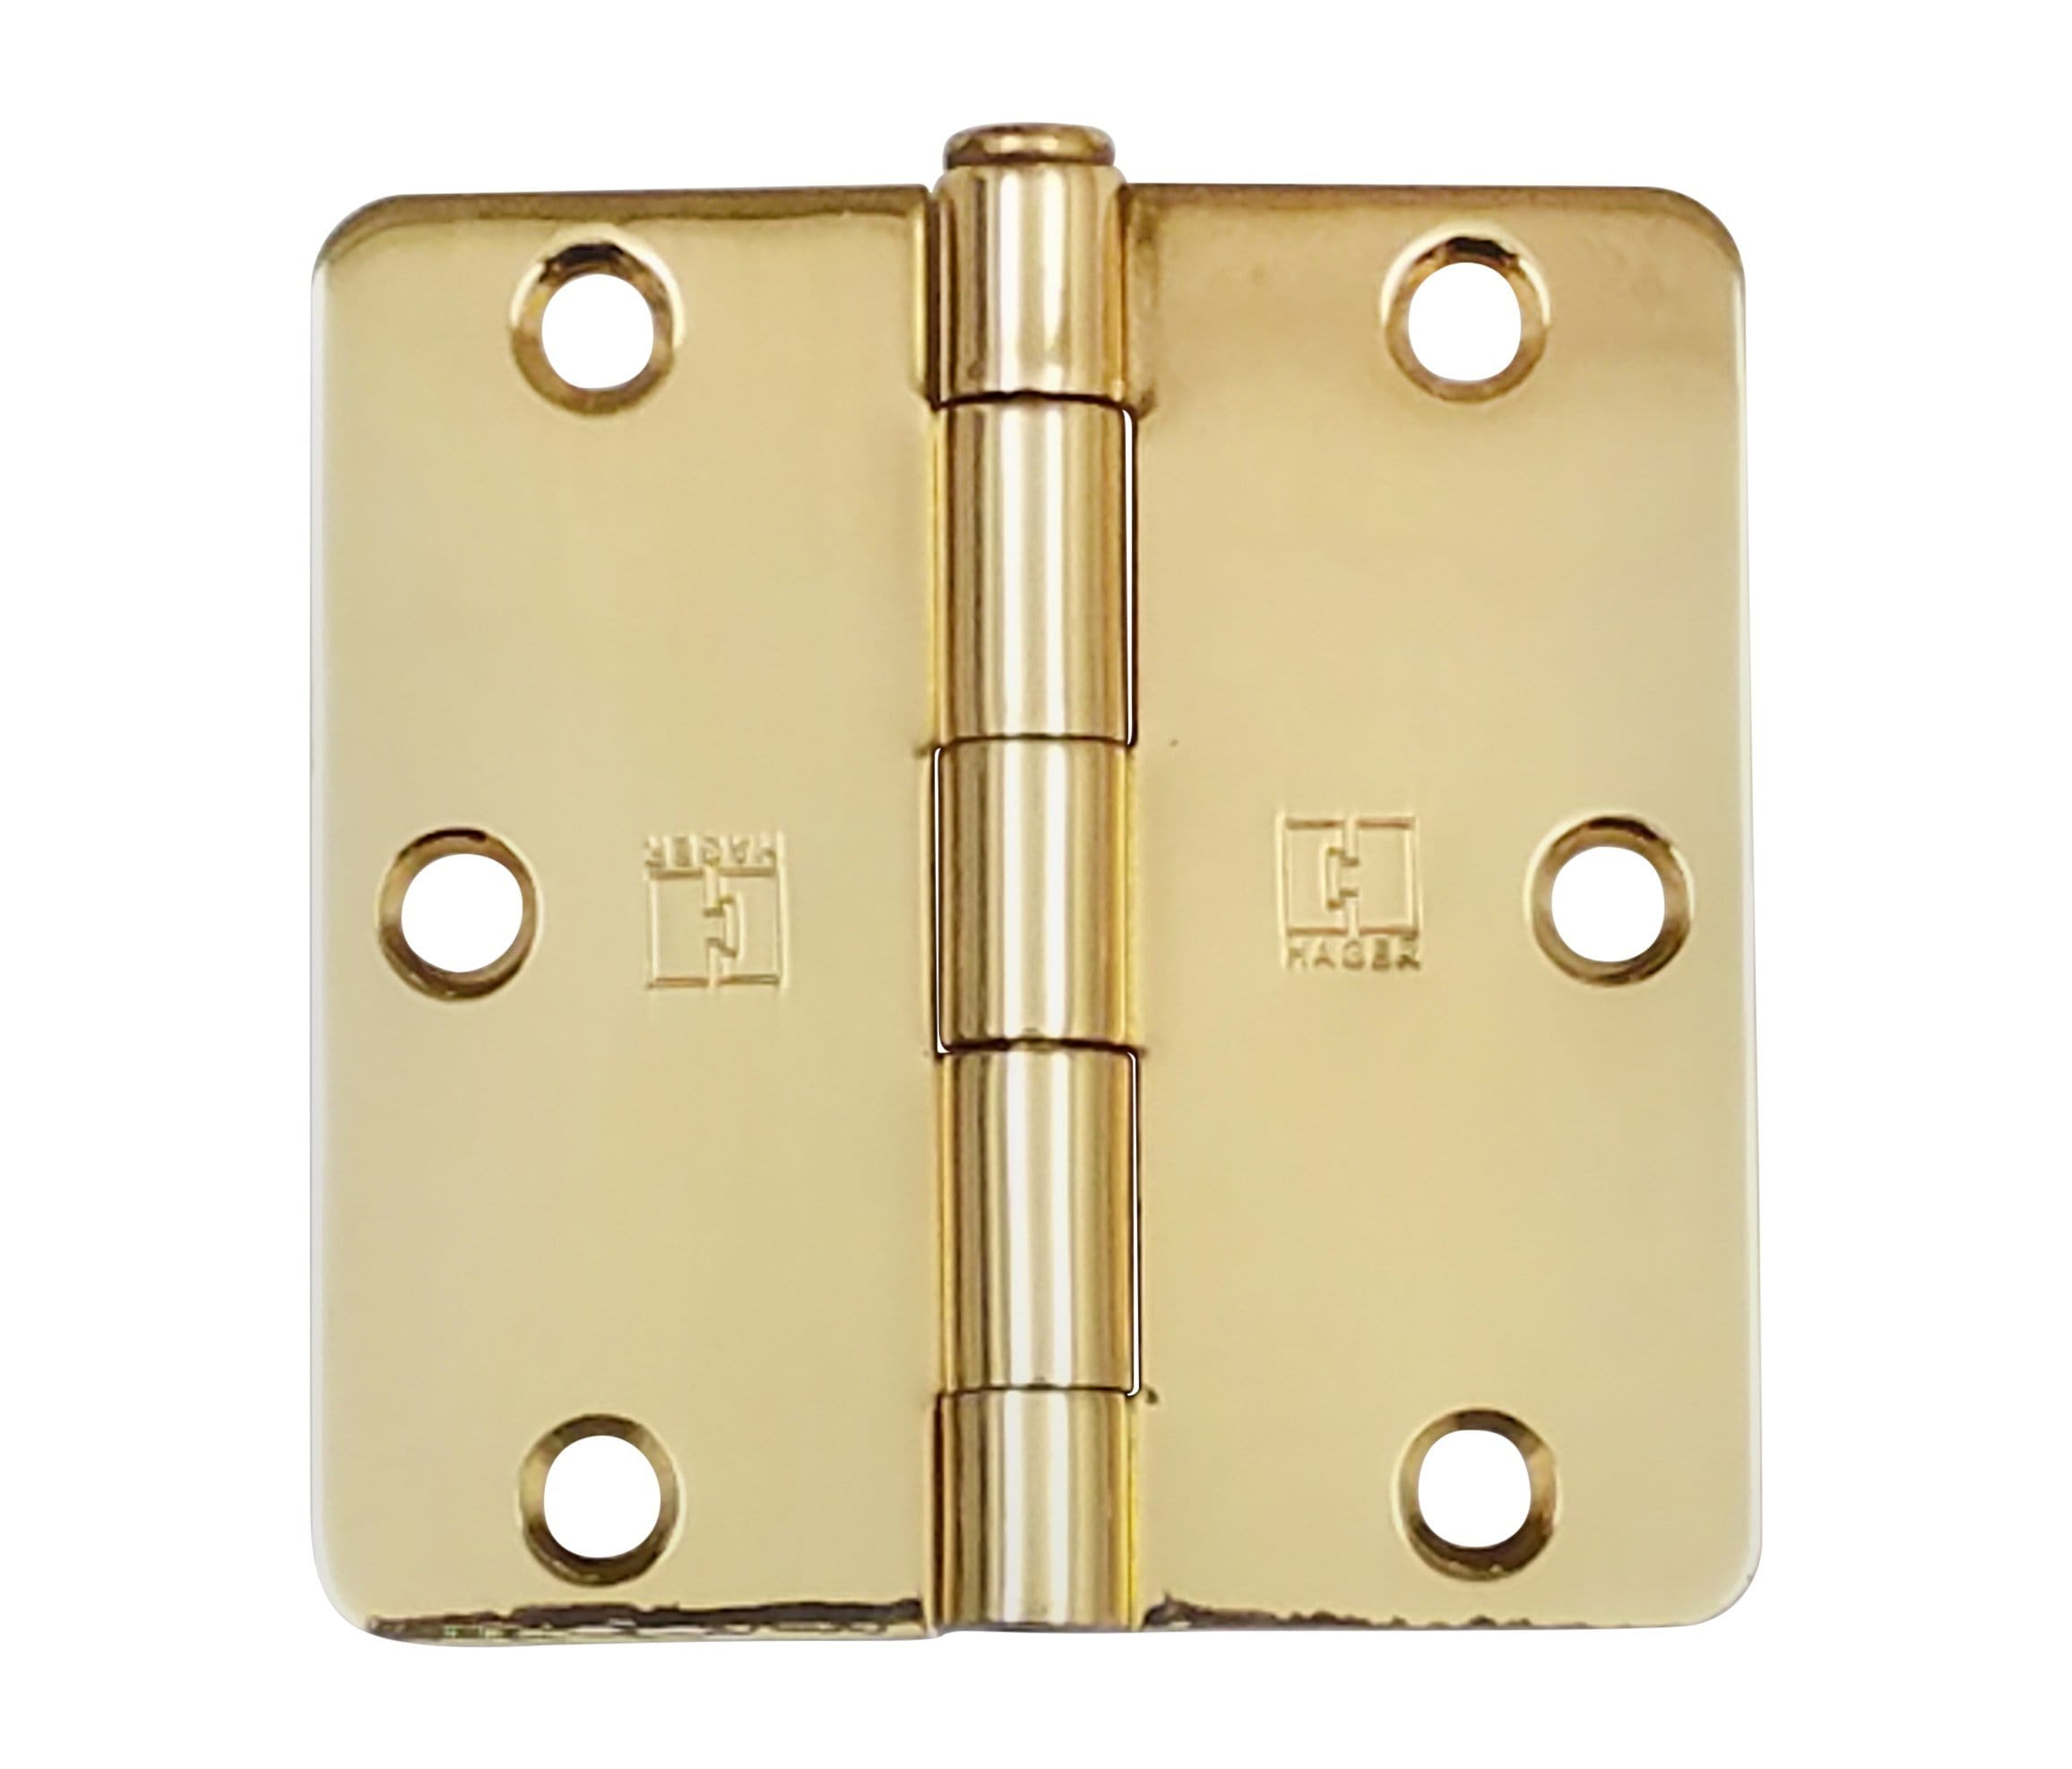 "Hager Door Hinges - 3.5"" Inch with 1/4"" radius - Multiple Finishes - 3 Pack"